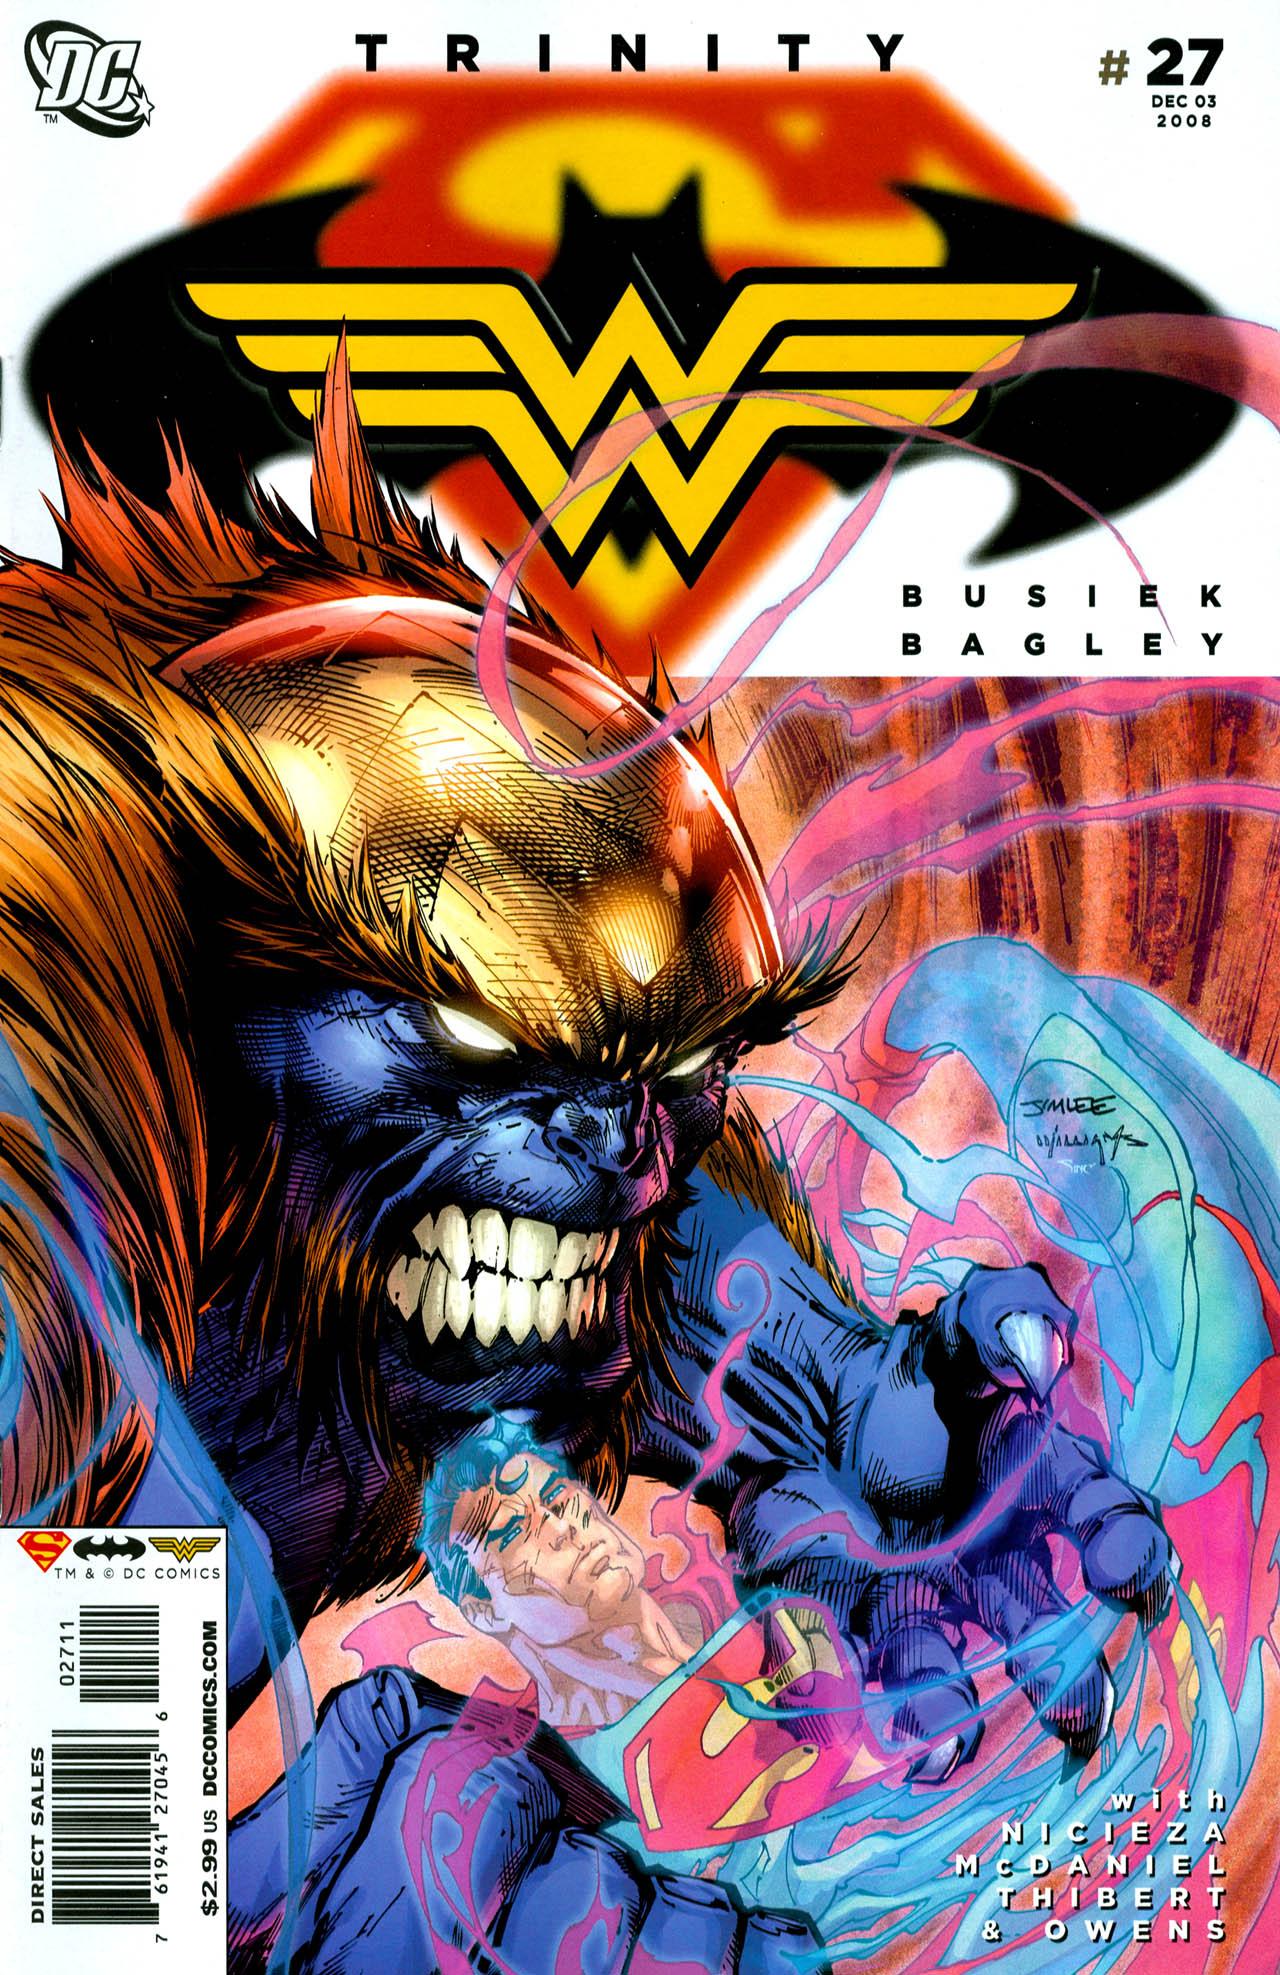 Read online Trinity (2008) comic -  Issue #27 - 1